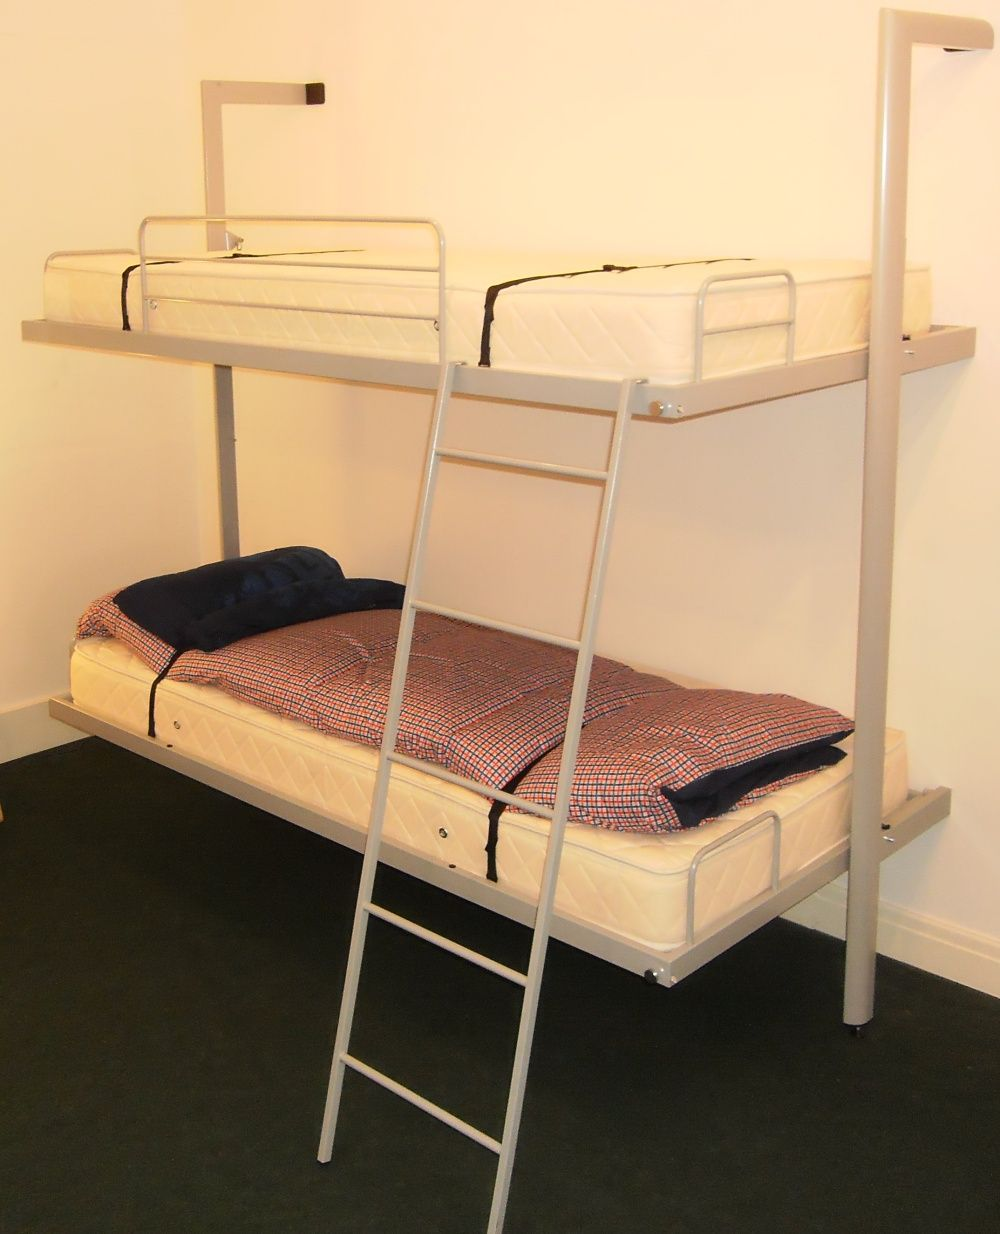 Best Foldaway Bunk Bed Wallbunk Otthon Pinterest Bunk 400 x 300